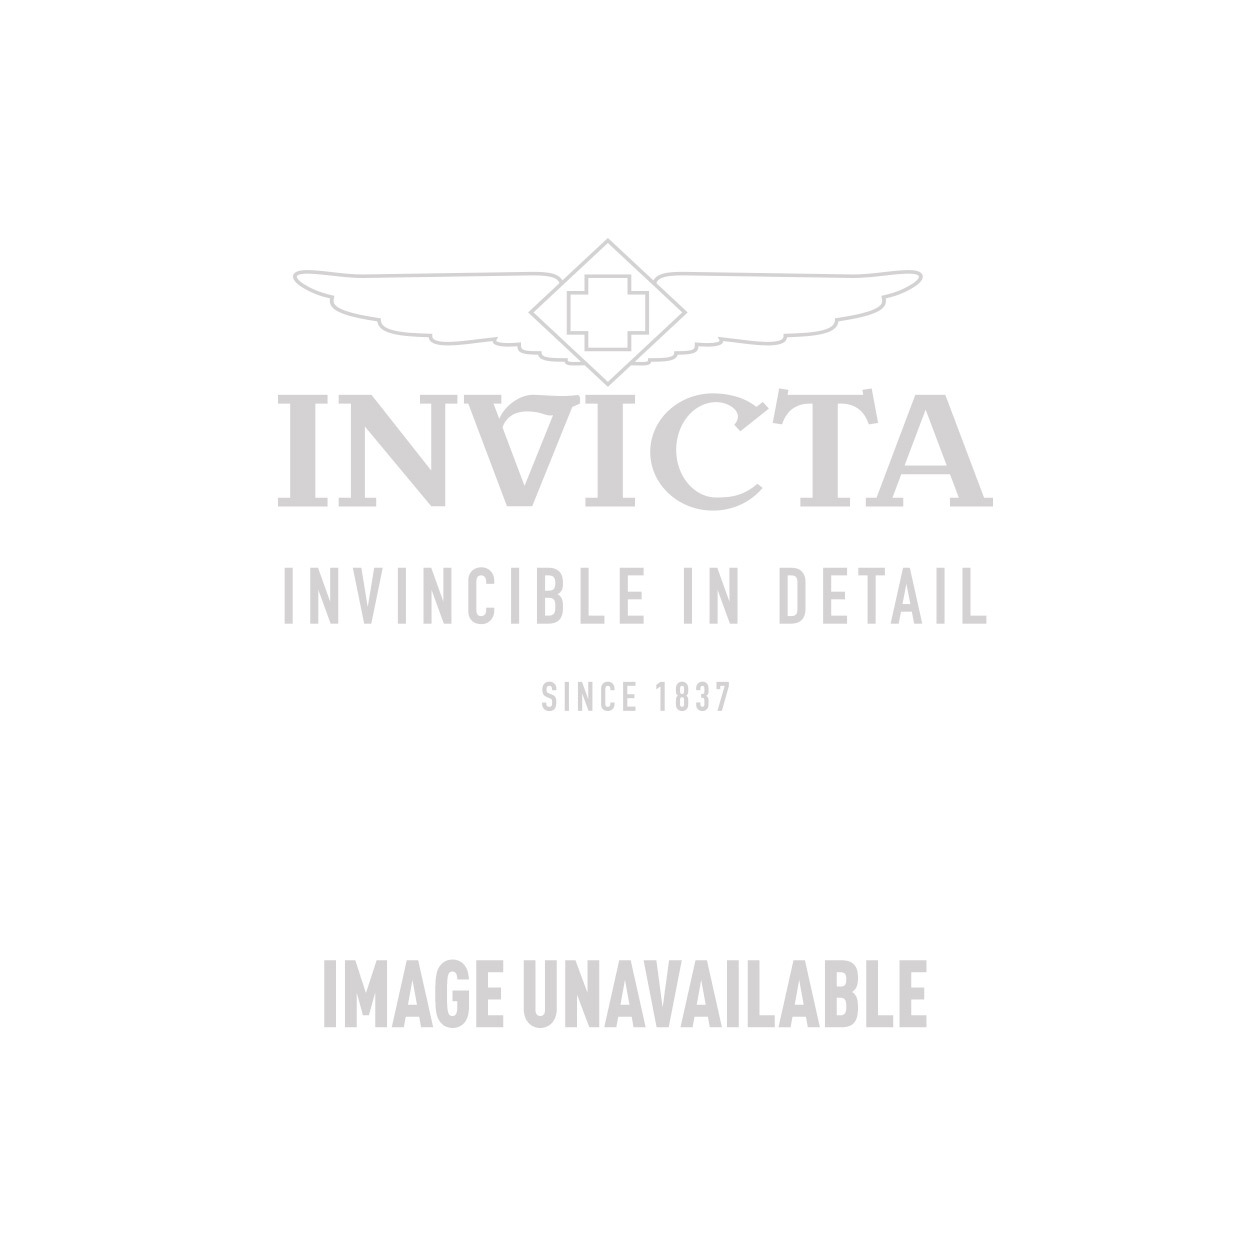 Invicta S1 Rally Swiss Movement Quartz Watch - Gold case with Brown, White tone Leather band - Model 17707